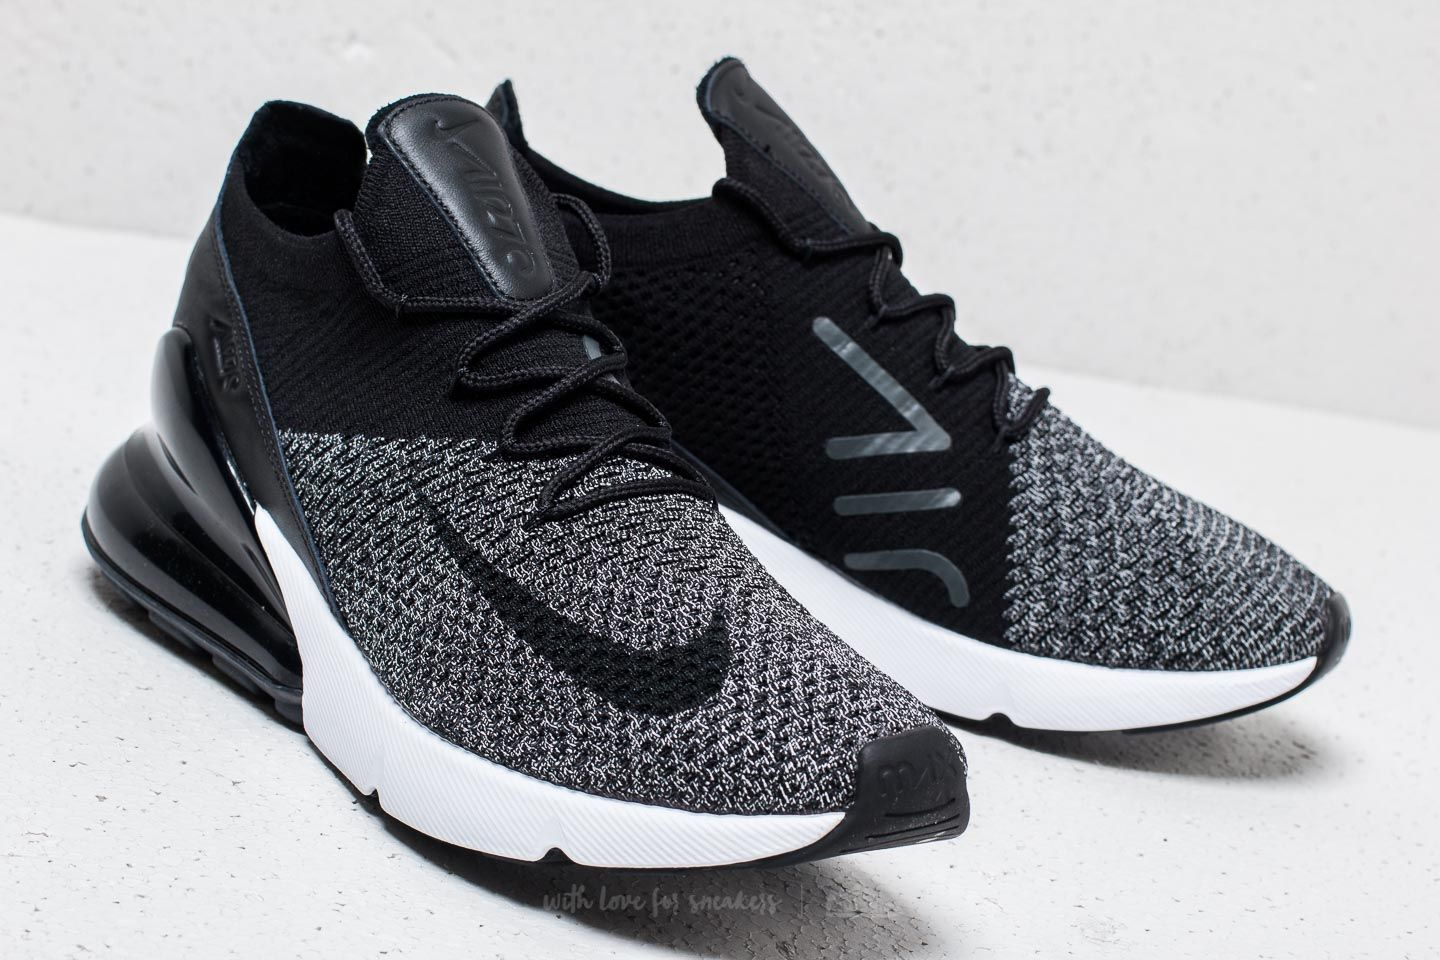 6823b0bb6 Nike Air Max 270 Flyknit | Black/ Black-White | $211 #nike #black #airmax  #retro #running #sneakers